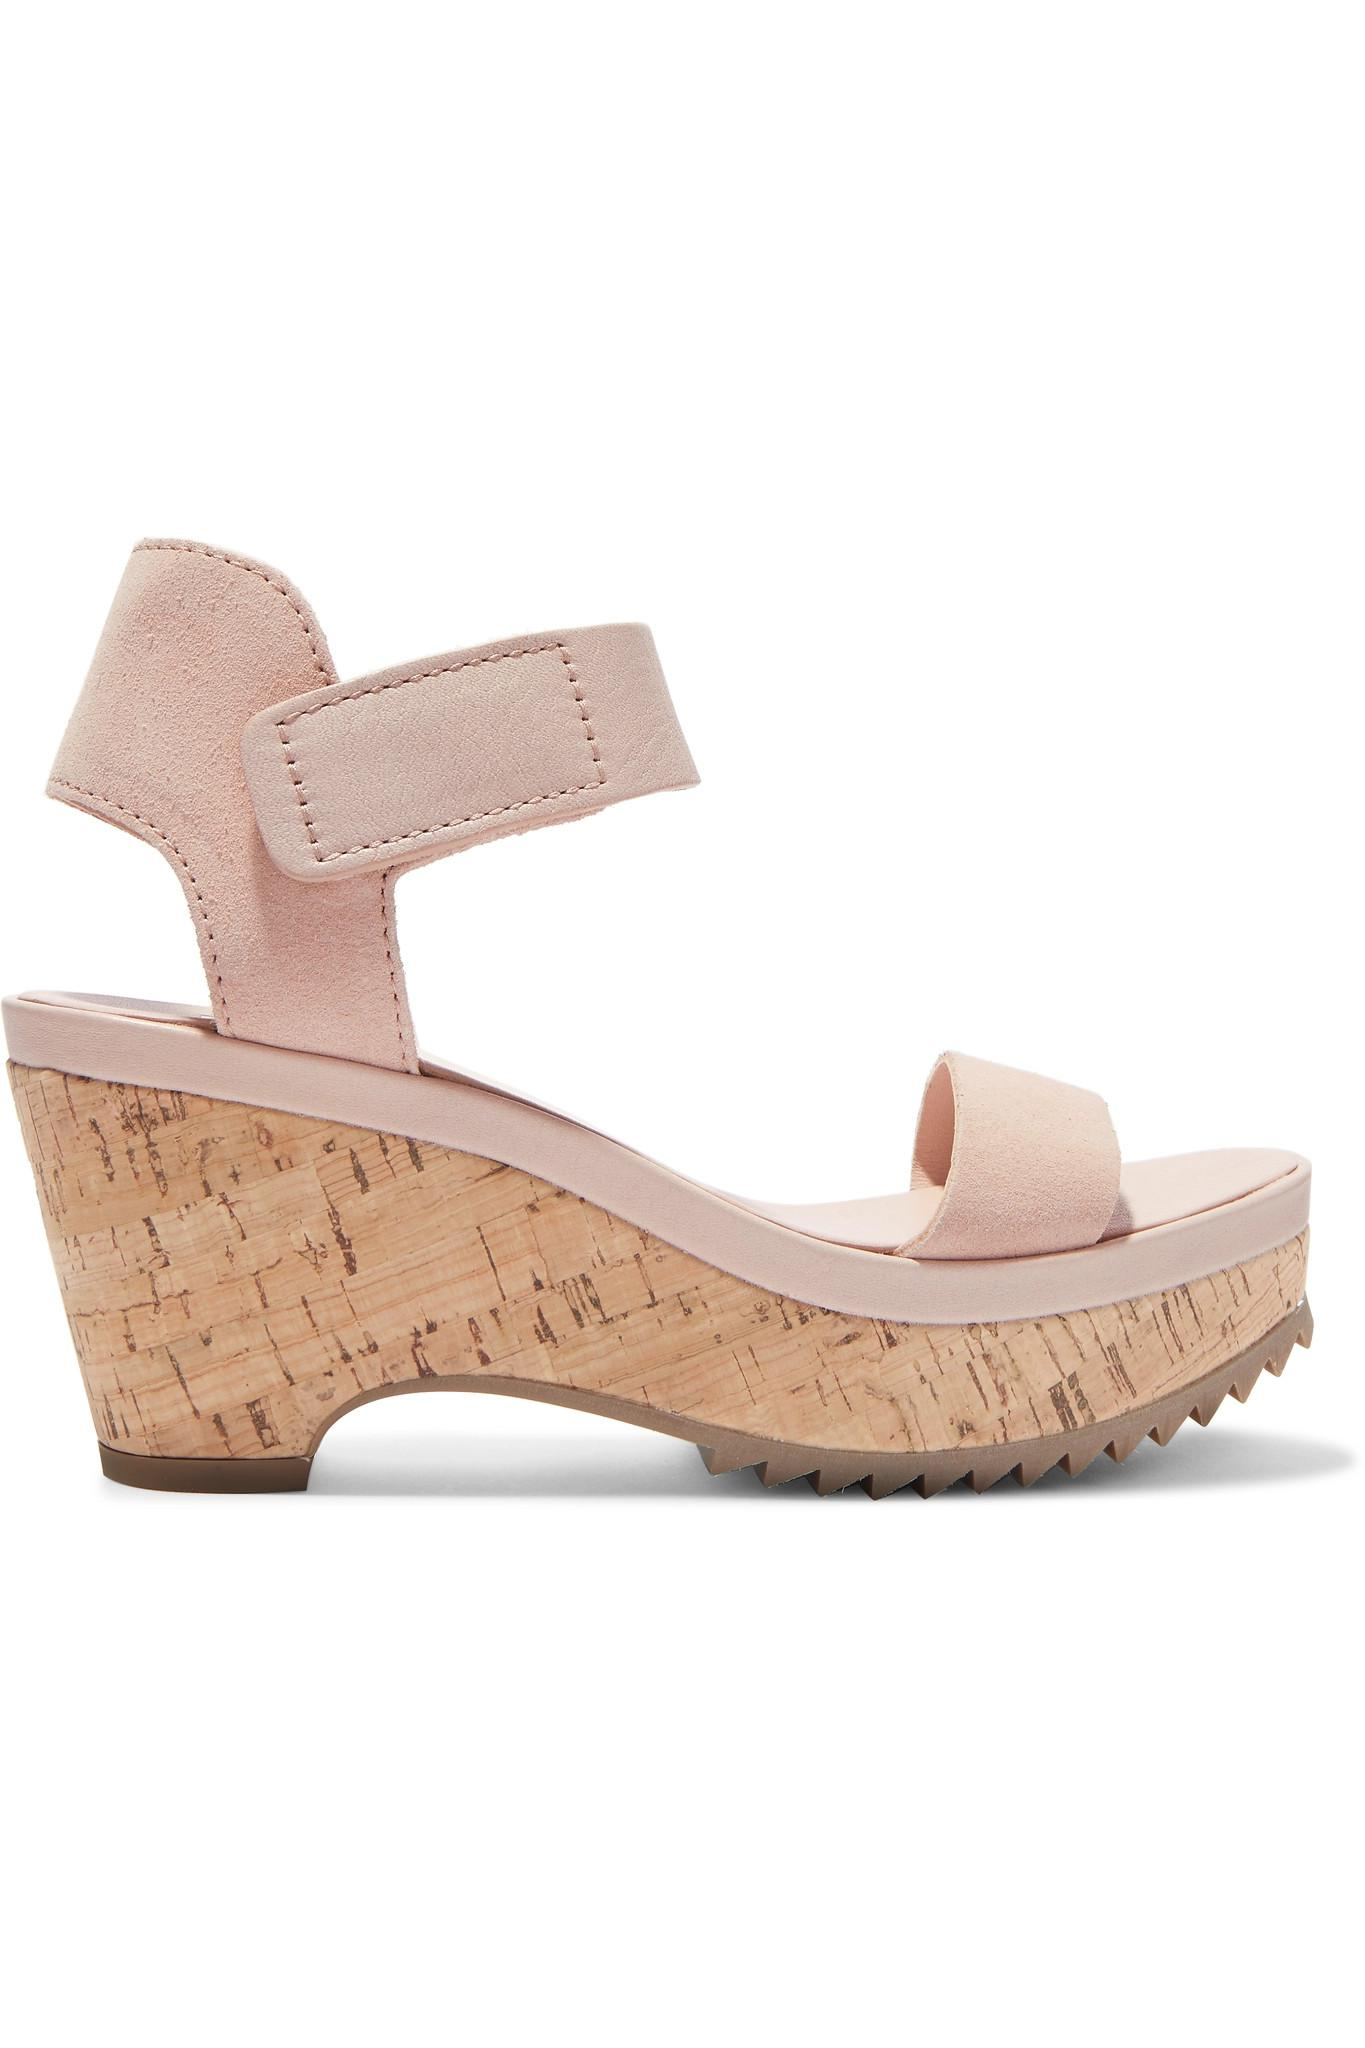 a38def8fb3c Pedro Garcia. Women s Franses Suede Wedge Sandals